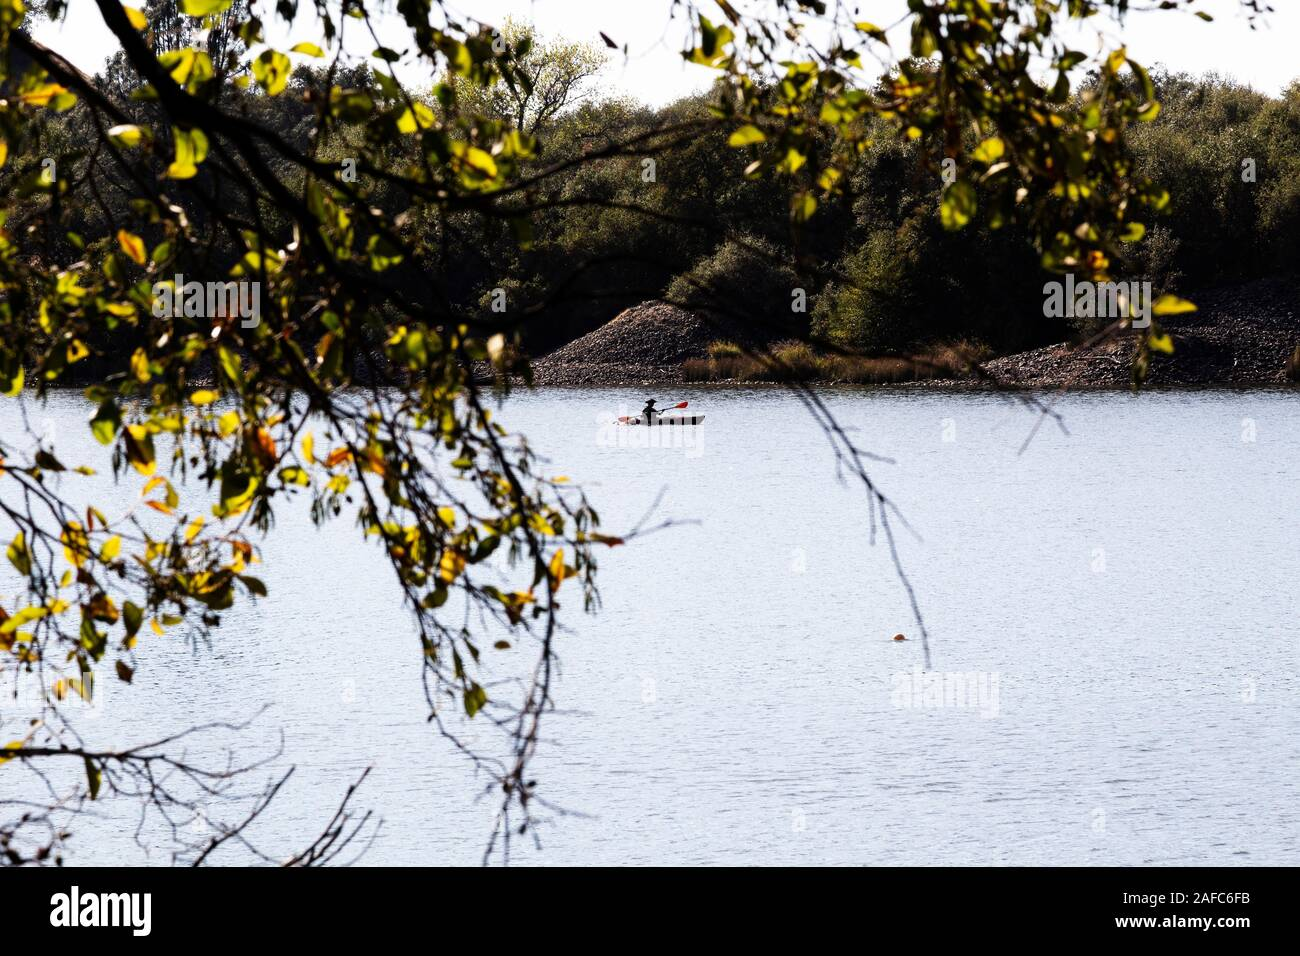 Single Distant Kayak Paddling On River Seen Through Branches Of Tree Stock Photo